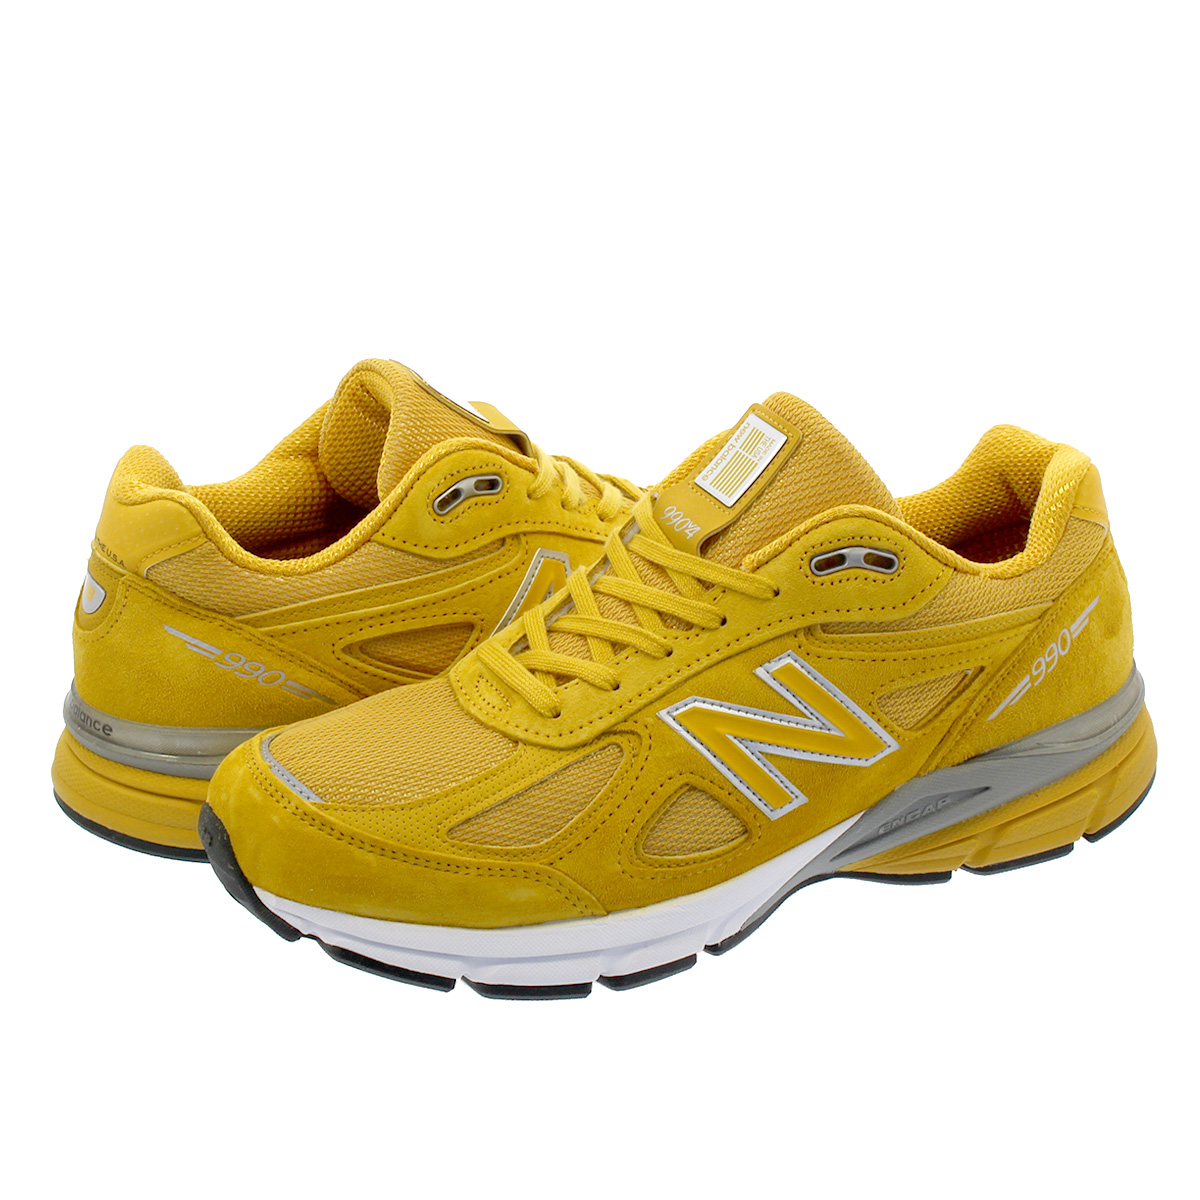 NEW BALANCE M990QK4 【MADE IN U.S.A】 ニューバランス M990 QK4 YELLOW/WHITE, KOUBO 40f6a55a